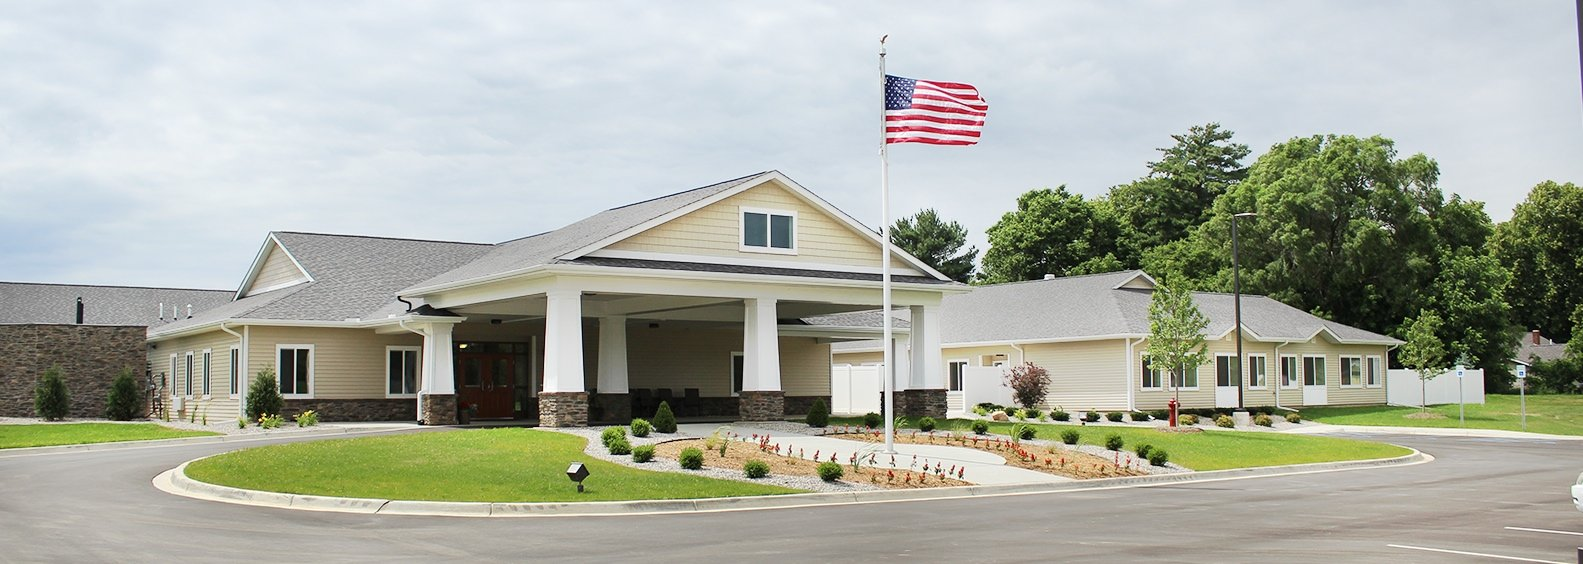 Governor's Glen Assisted Living - Photo 1 of 7